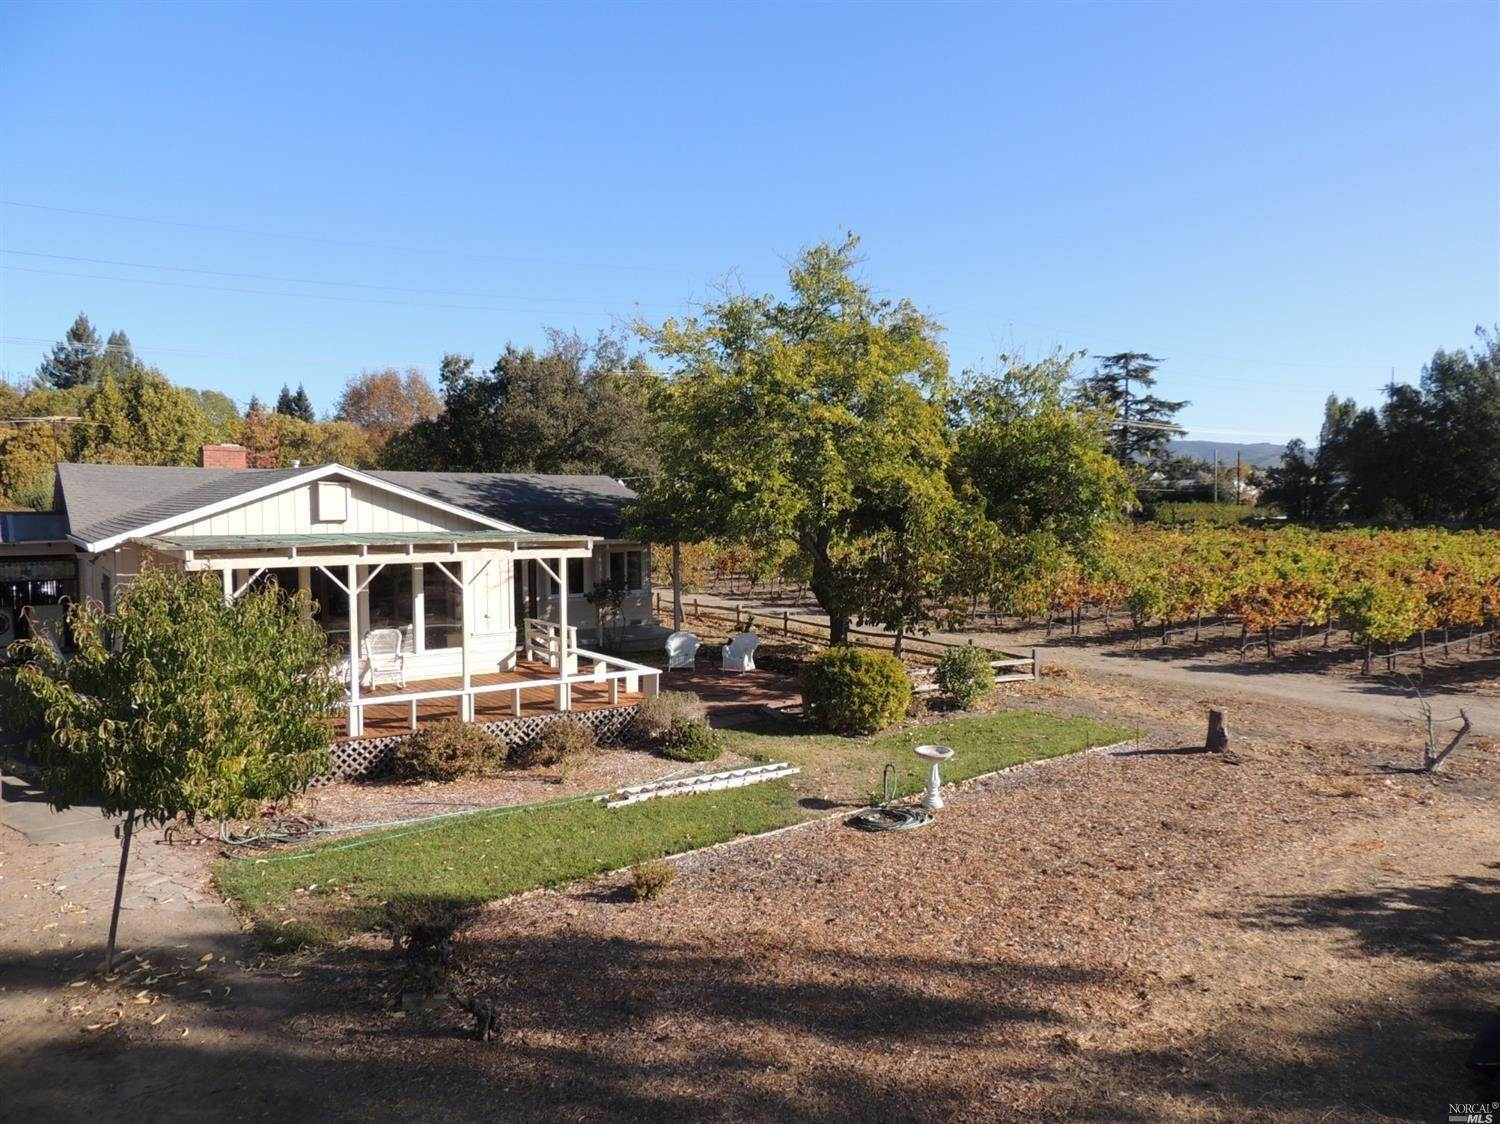 Property for Sale at 335 Napa Road, Sonoma Sonoma, California 95476 United States